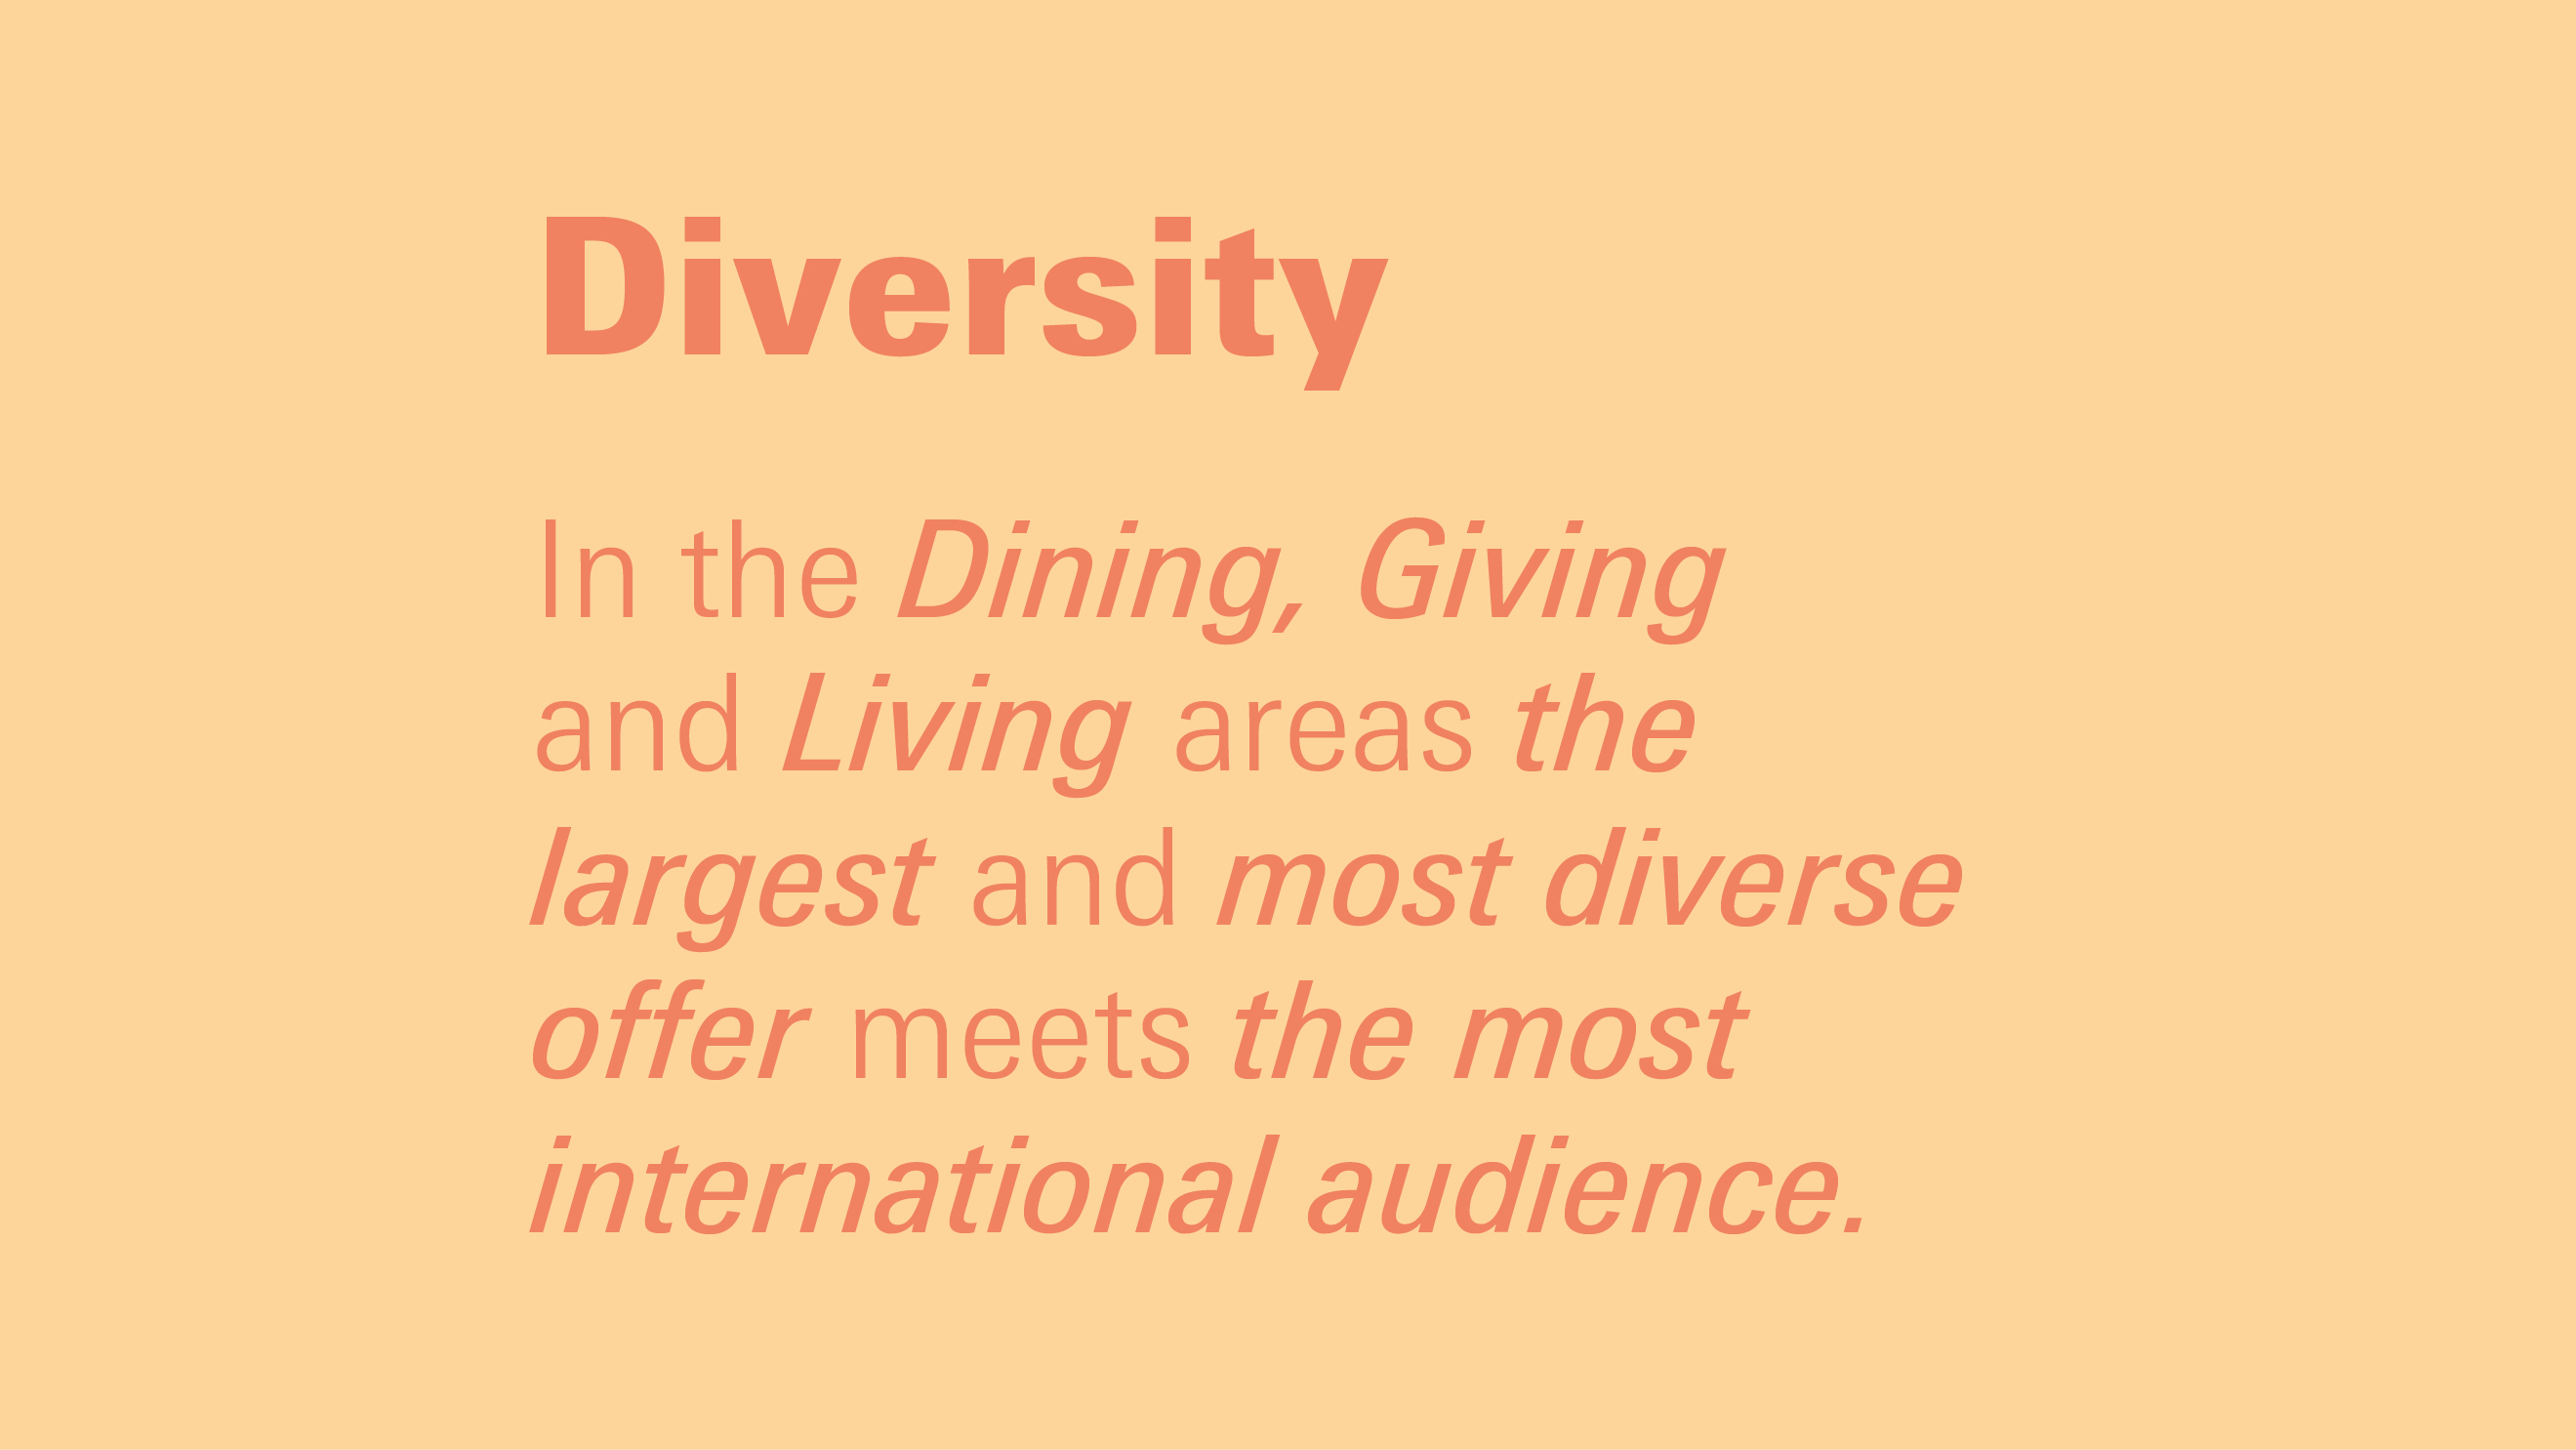 Advantages Ambiente: diversity